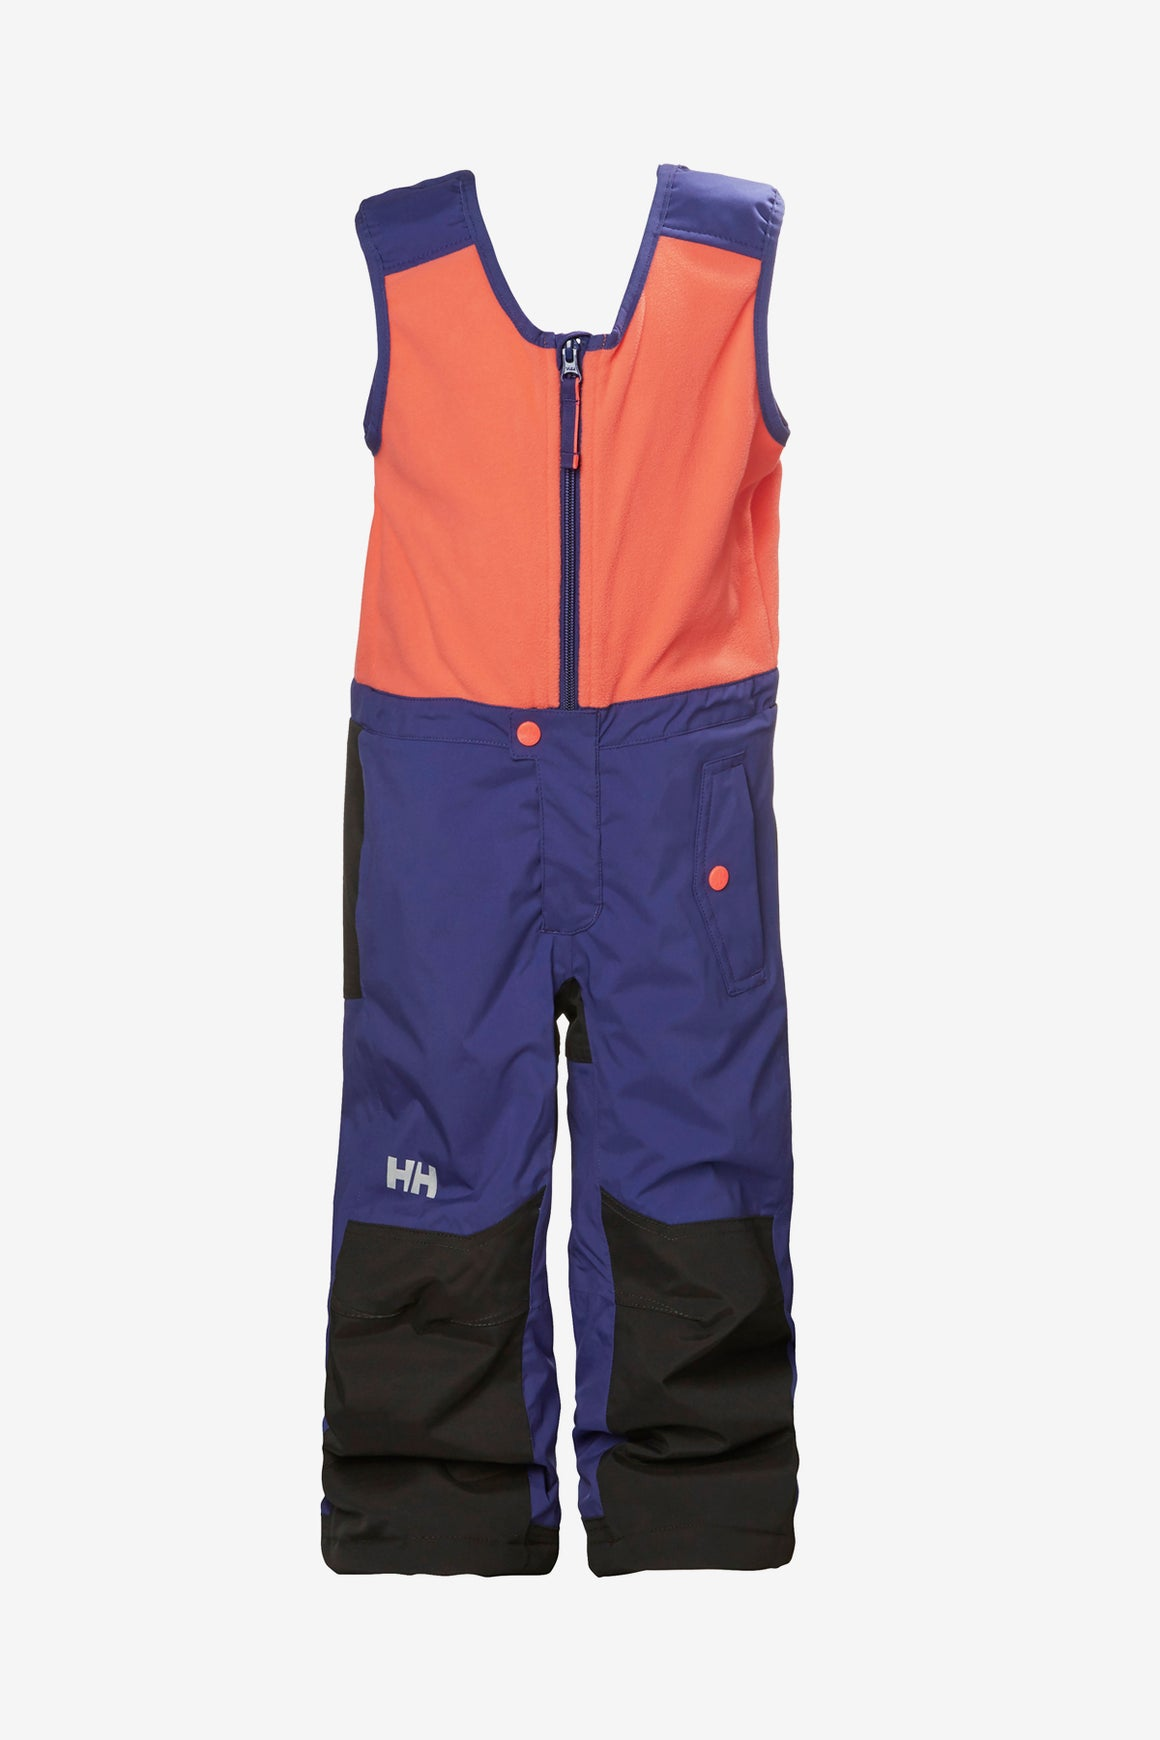 Helly Hansen Powder Bib Snowpants - Lavender